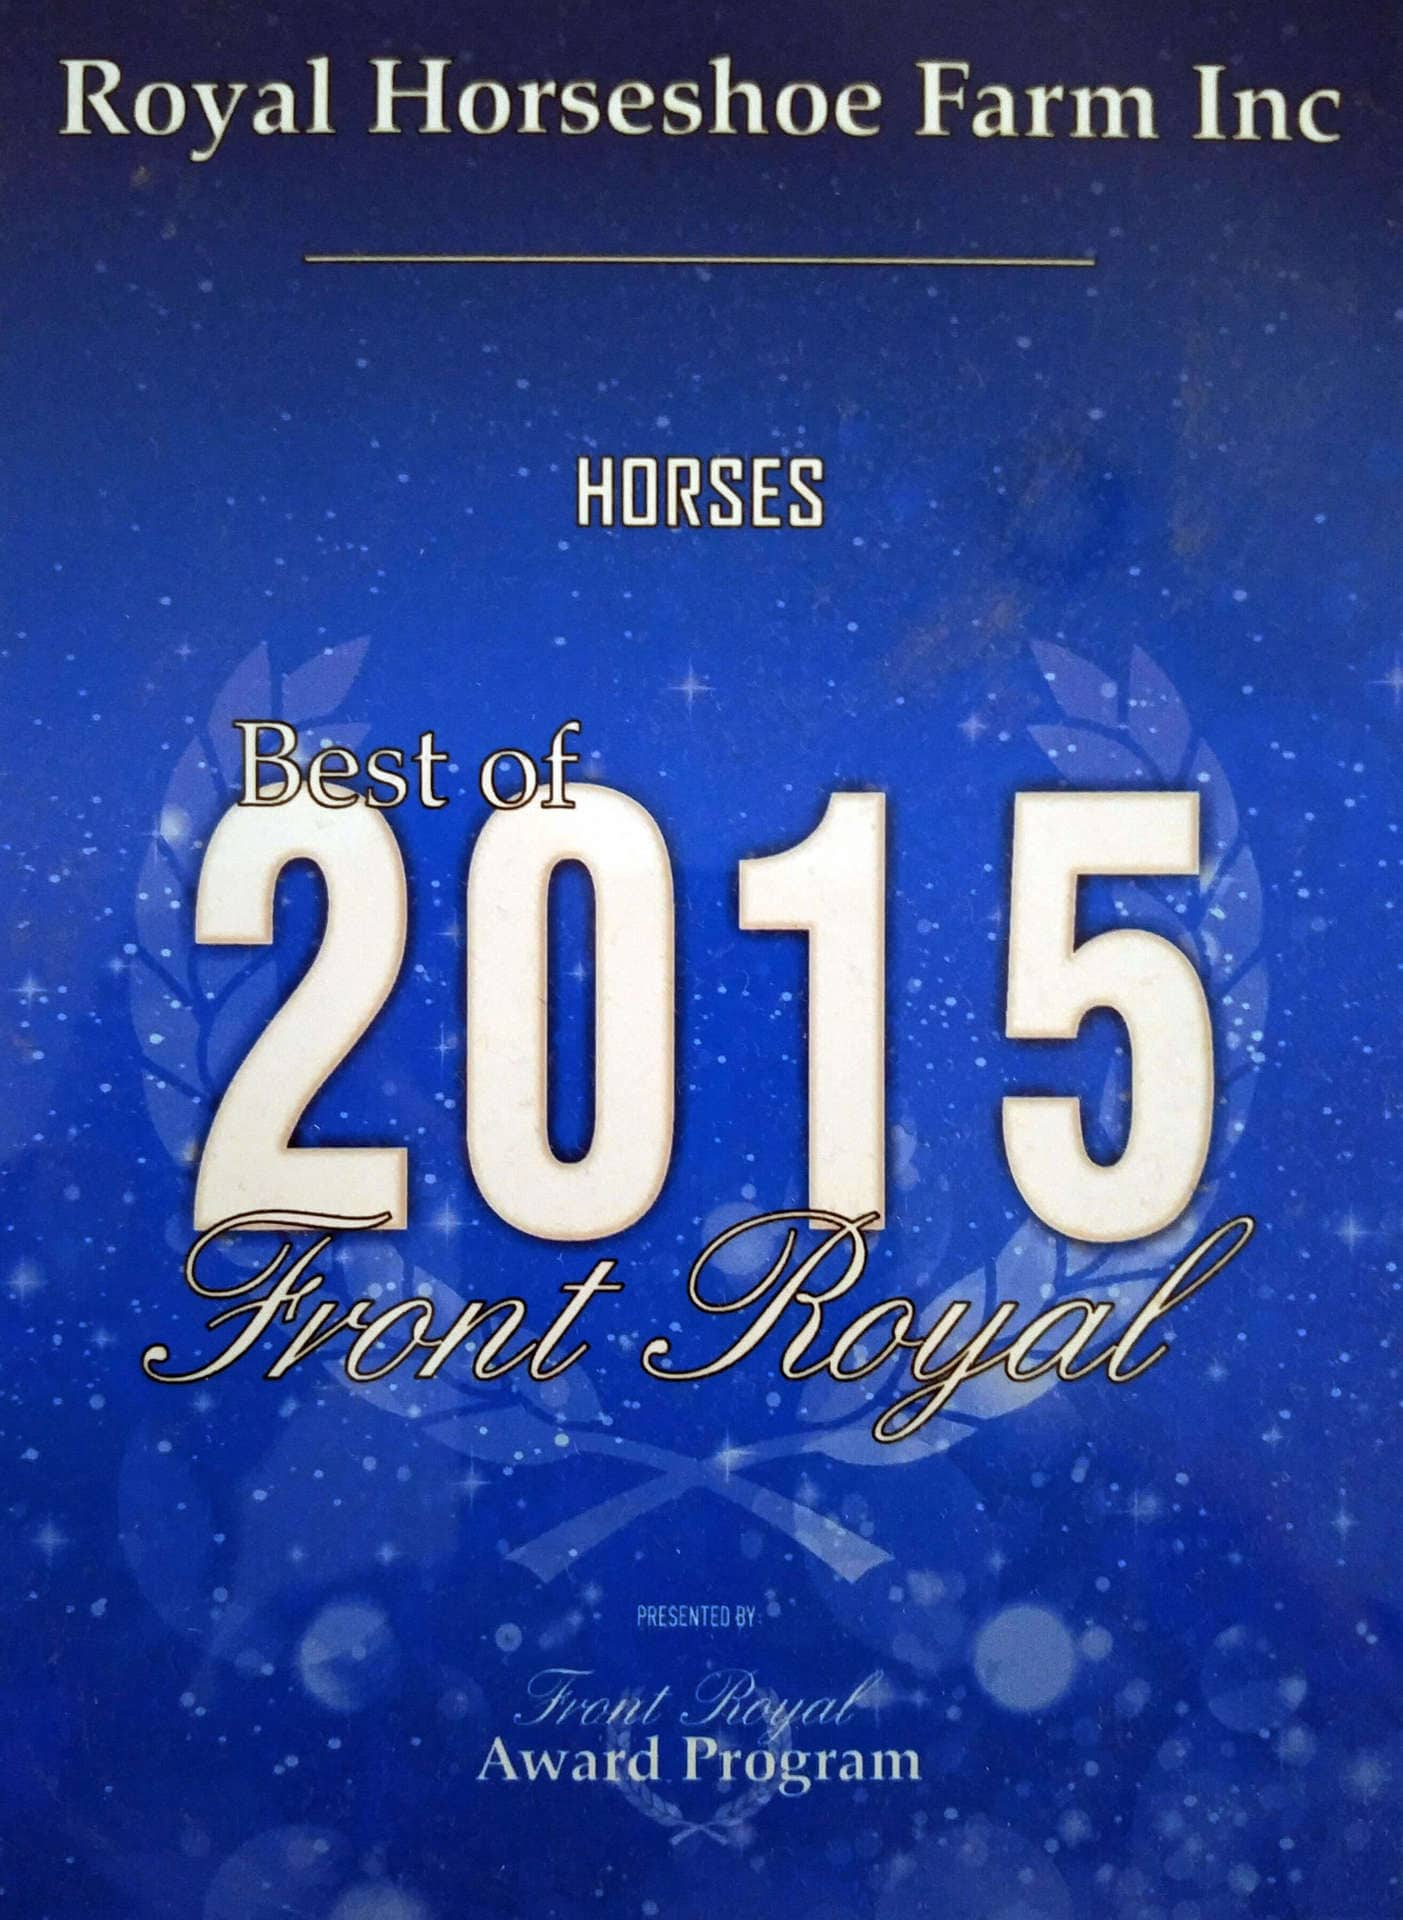 Royal Horseshoe Farms was given the 2015 award for best horses by the town of Front Royal